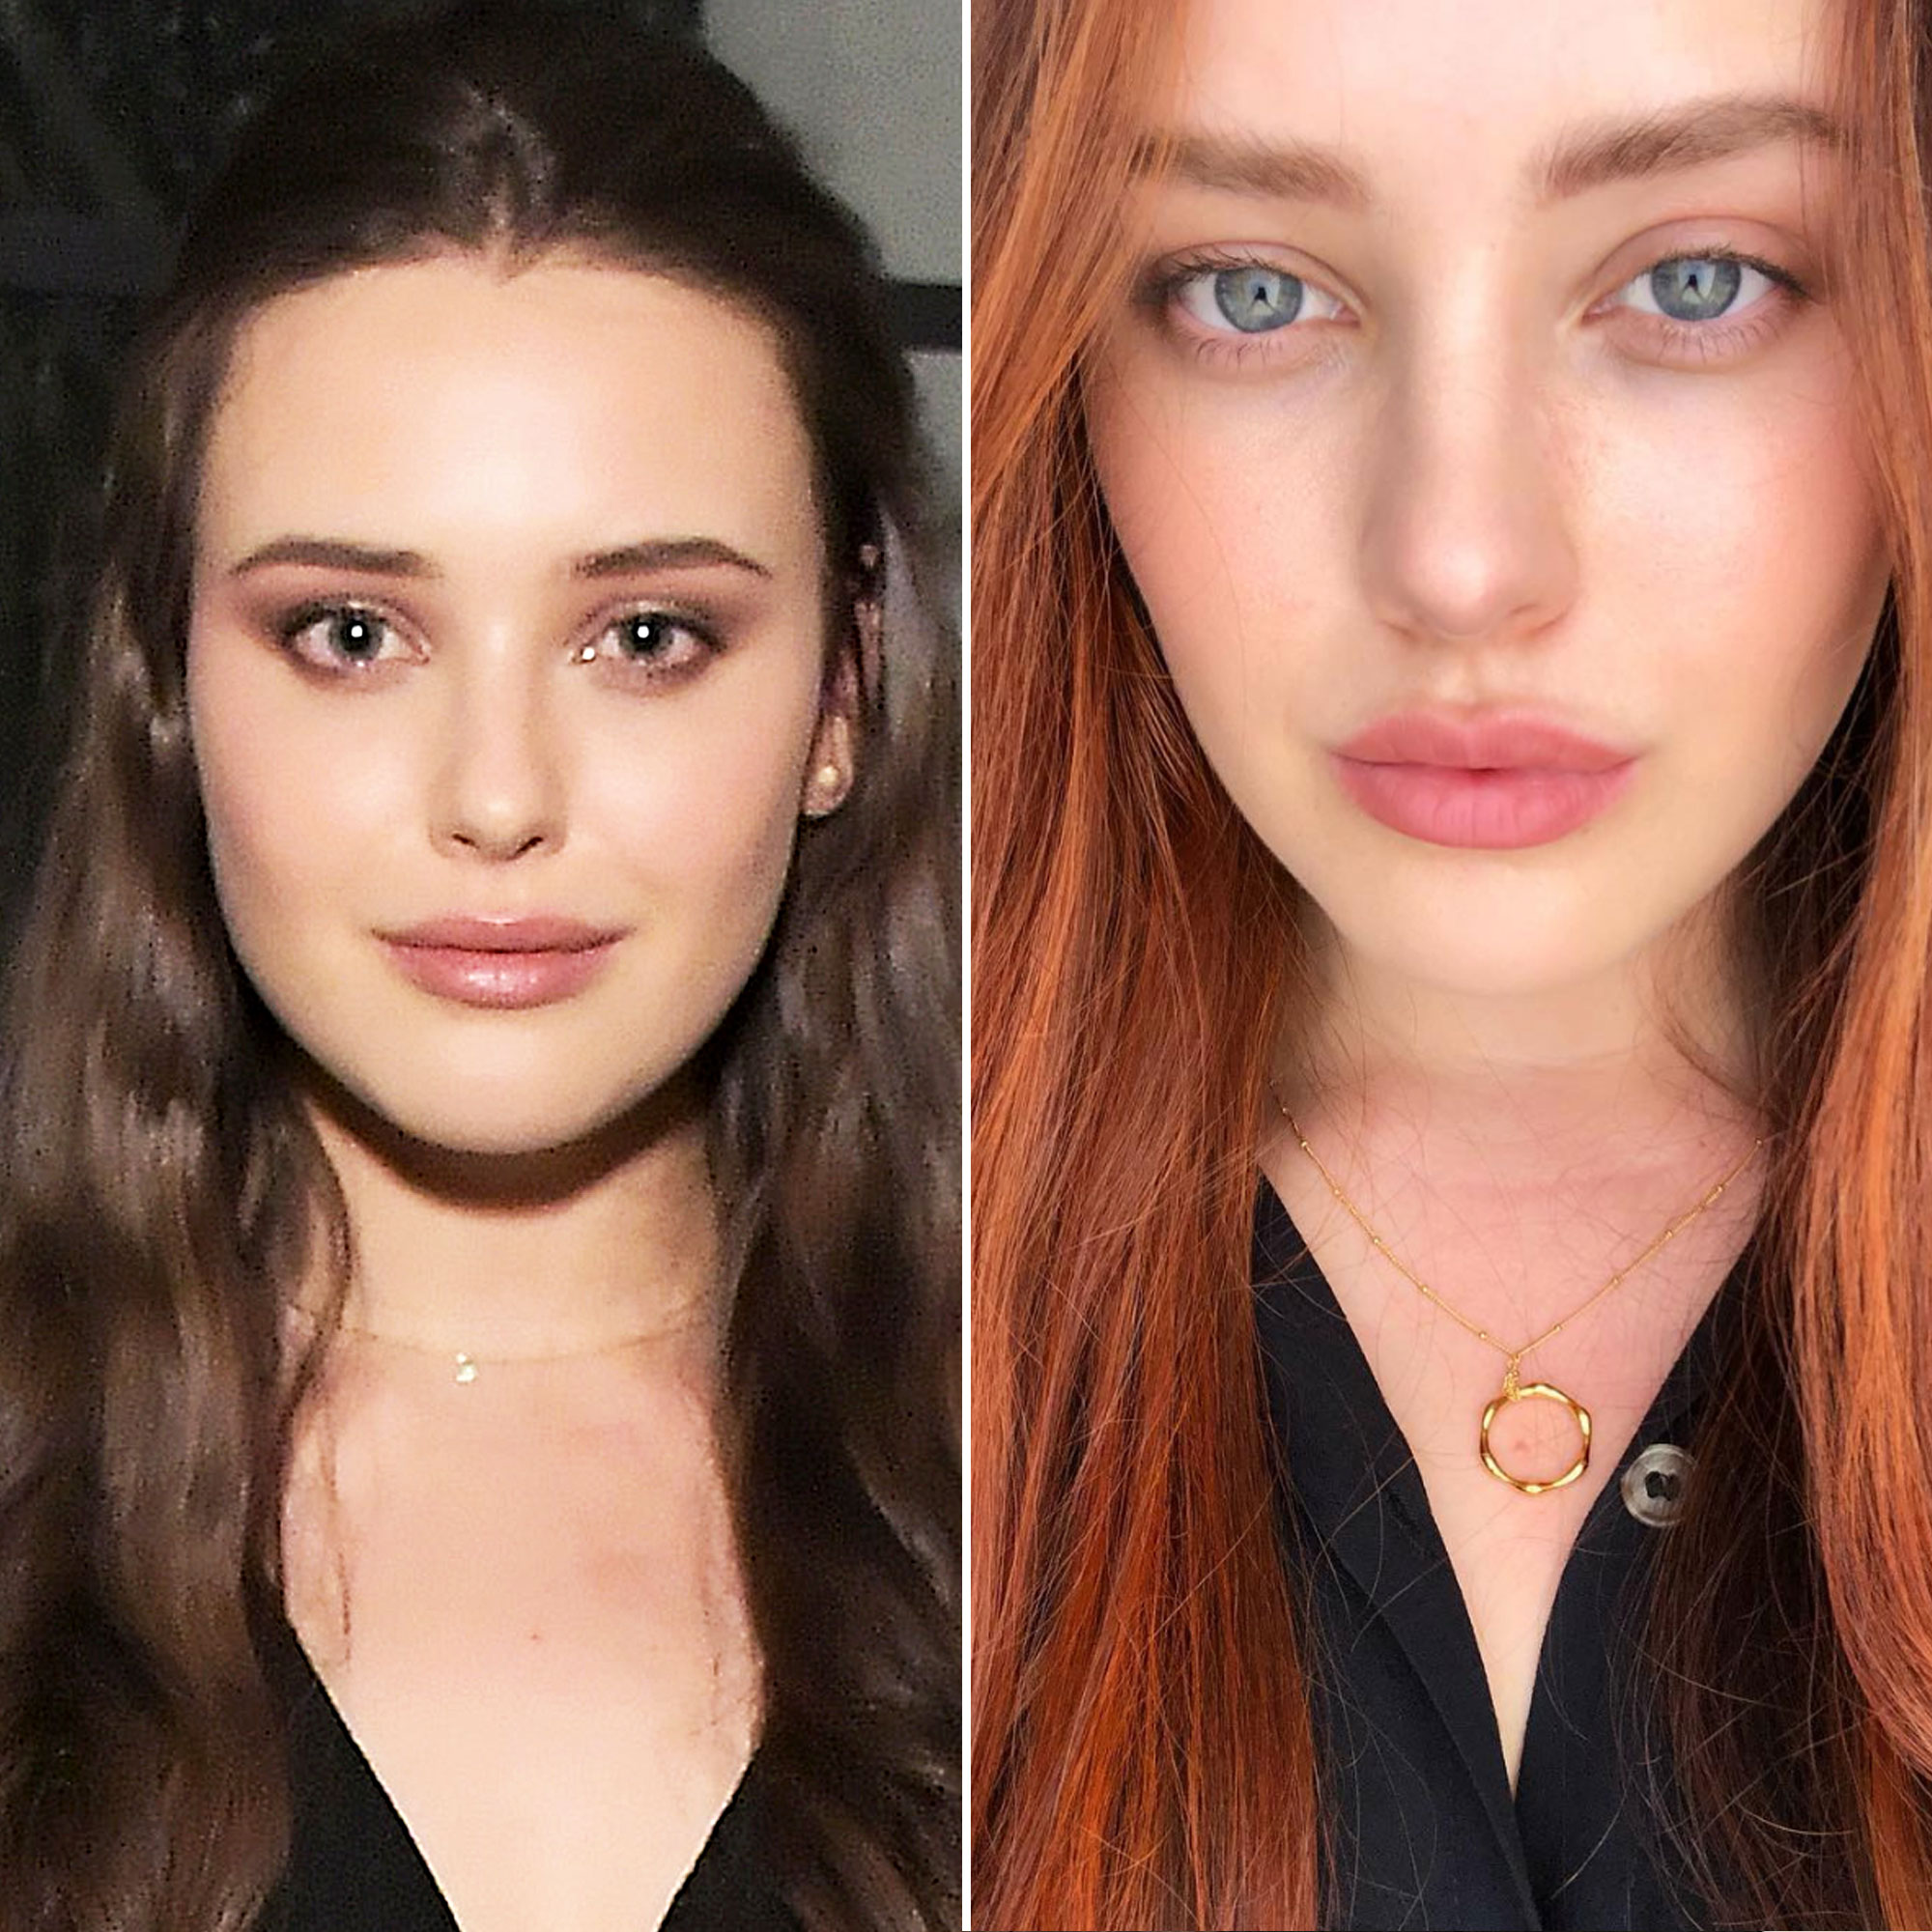 "Katherine Langford Is a Redhead and More Celeb Hair Changes - The Aussie beauty shared on Instagram that she has traded her chestnut brown locks for a sunset-inspired red-orange shade. ""She (red)y 💇💁,"" the 13 Reasons Why star cheekily captioned the selfie."